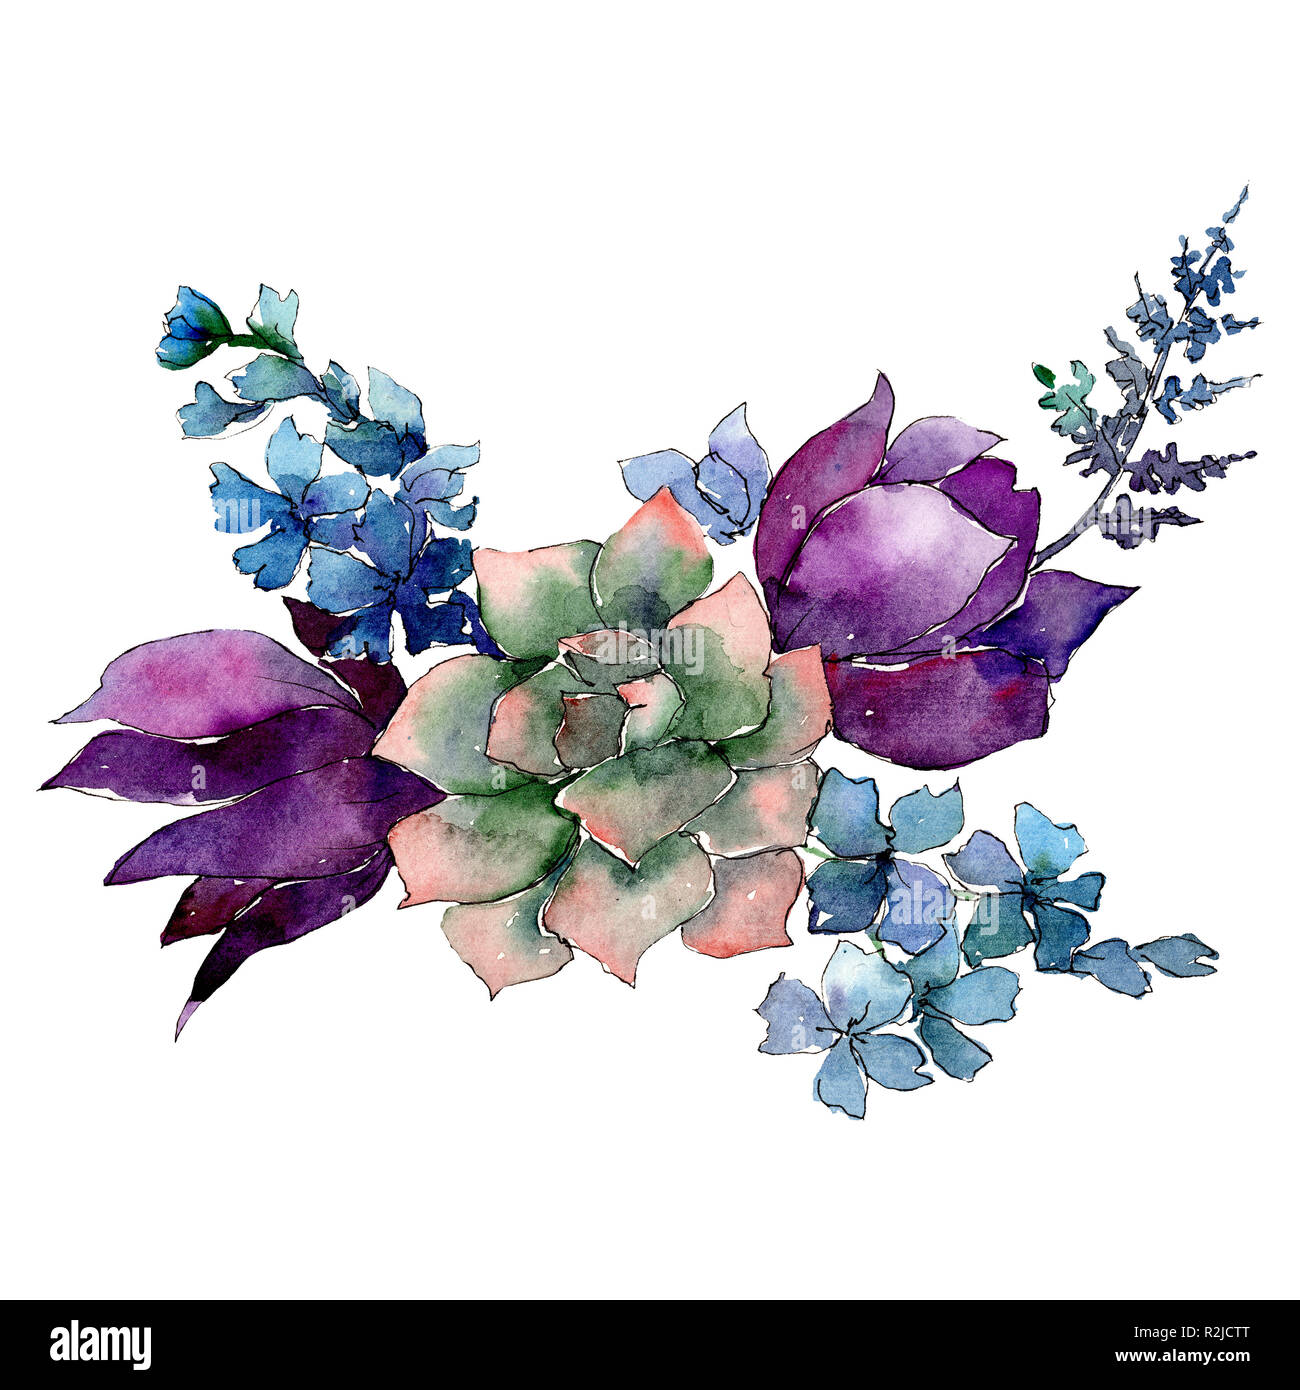 Succulent With Purple And Blue Flowers Isolated Bouquet Illustration Element Watercolor Background Illustration Set Stock Photo Alamy